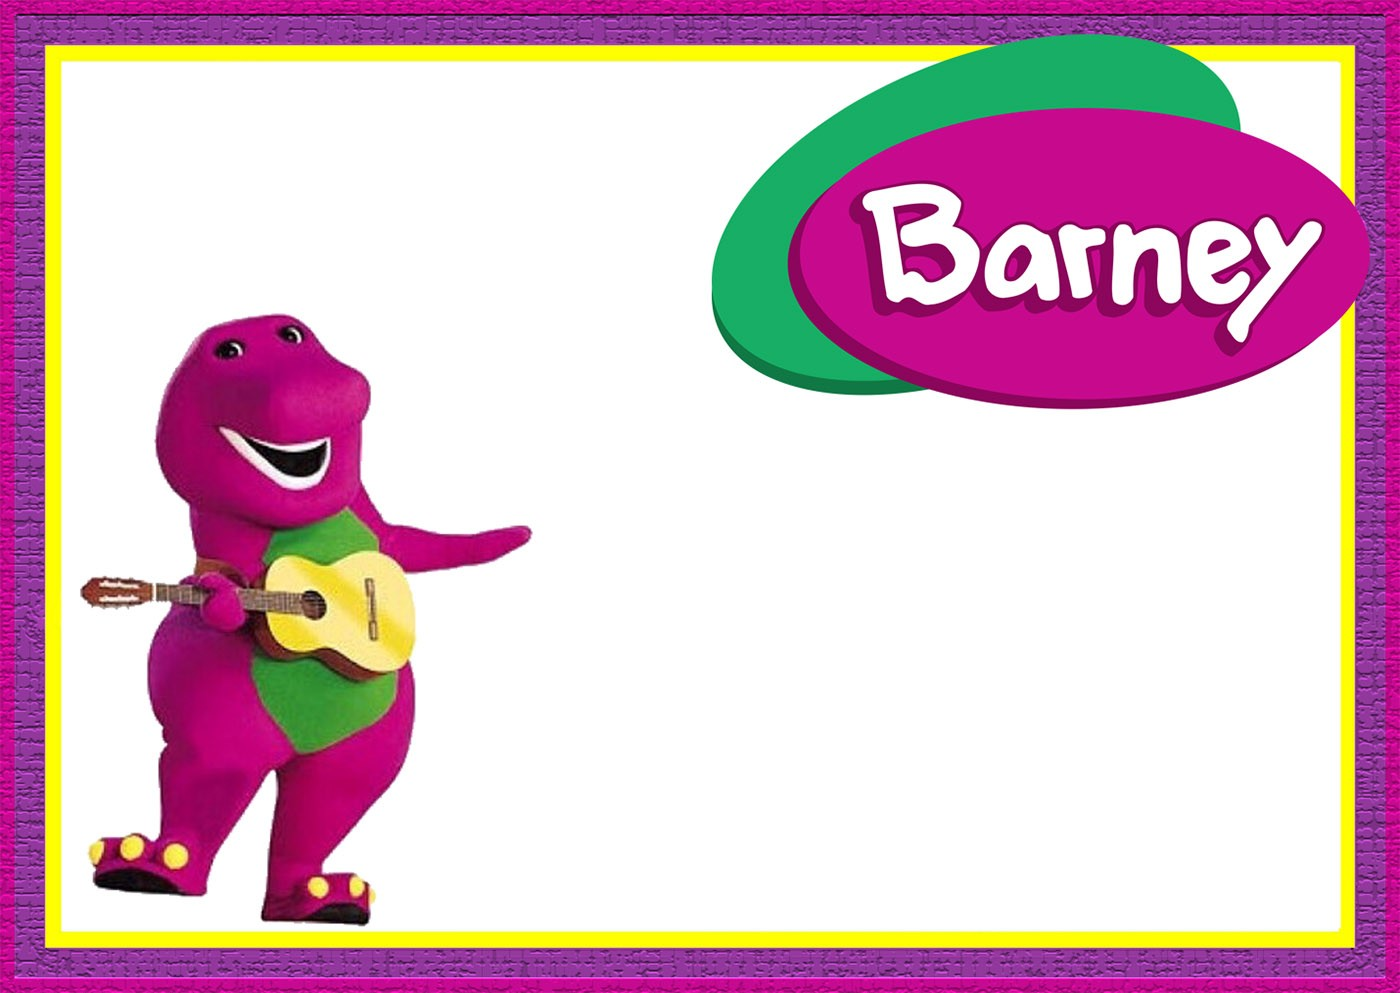 Barney the dinosaur party invitation template invitations online barney the dinosaur party invitation template monicamarmolfo Images